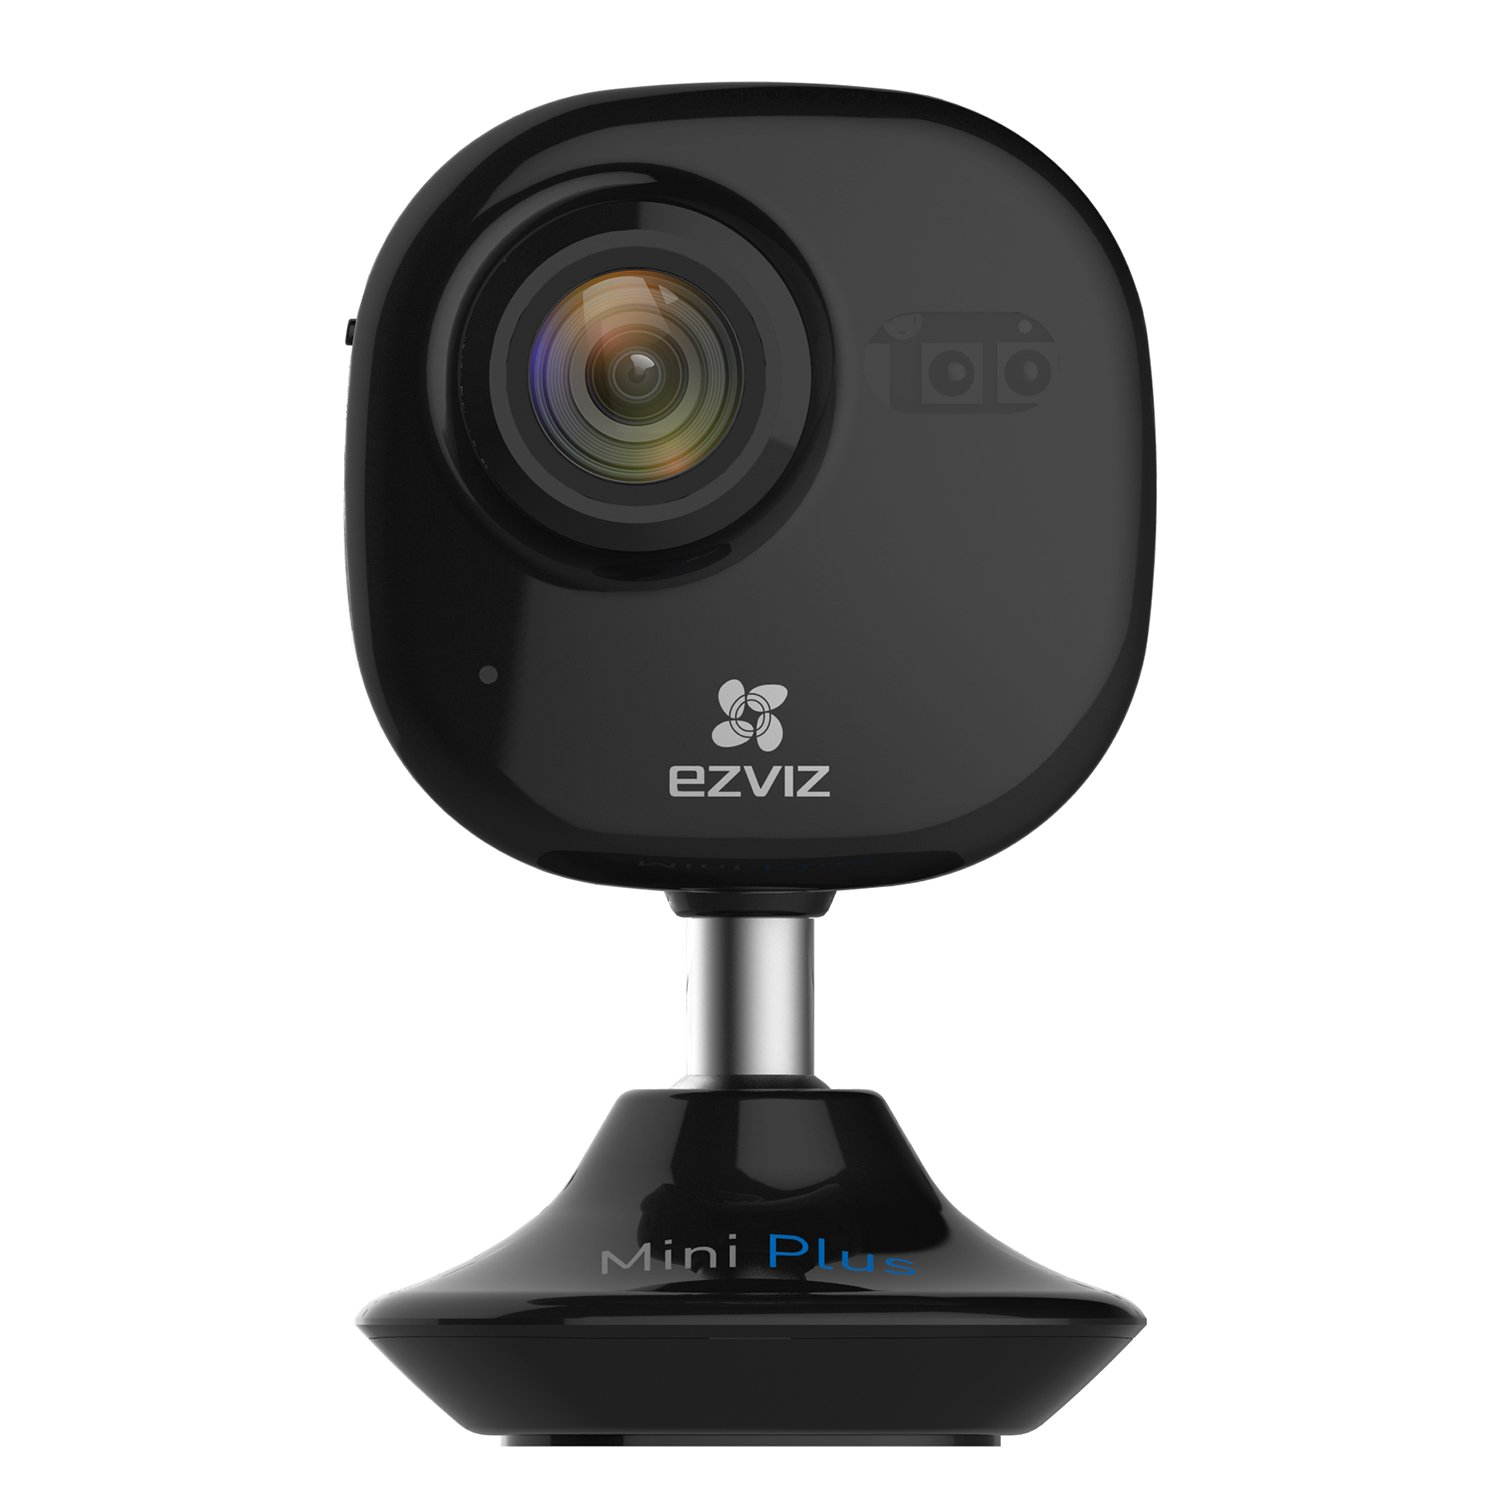 EZVIZ Mini Plus HD 1080p Wi-Fi Video Security Camera, Works with Alexa – Black by EZVIZ